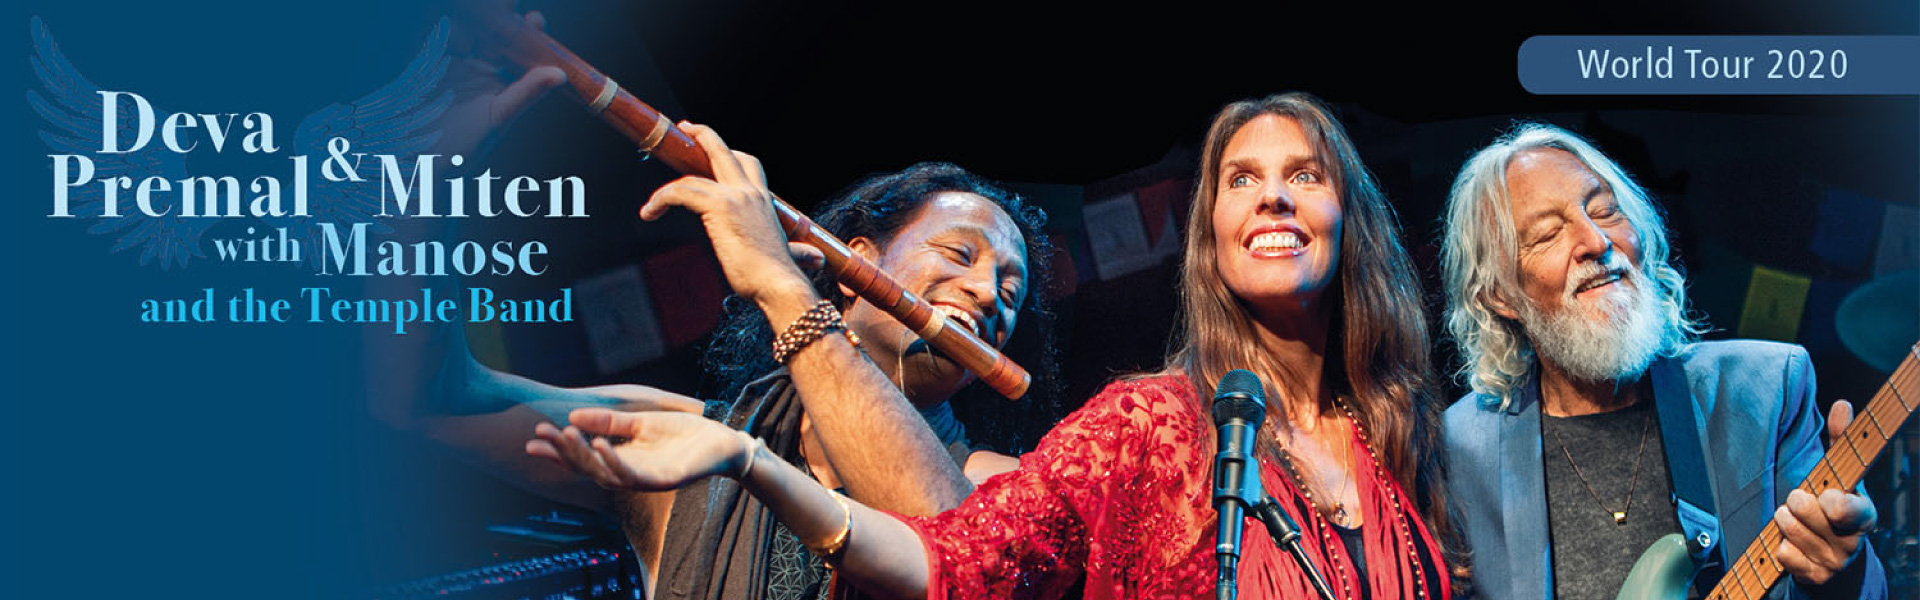 Deva Premal & Miten with Manose and the Temple Band :: 27 & 28 October 2021 @KAF Almere